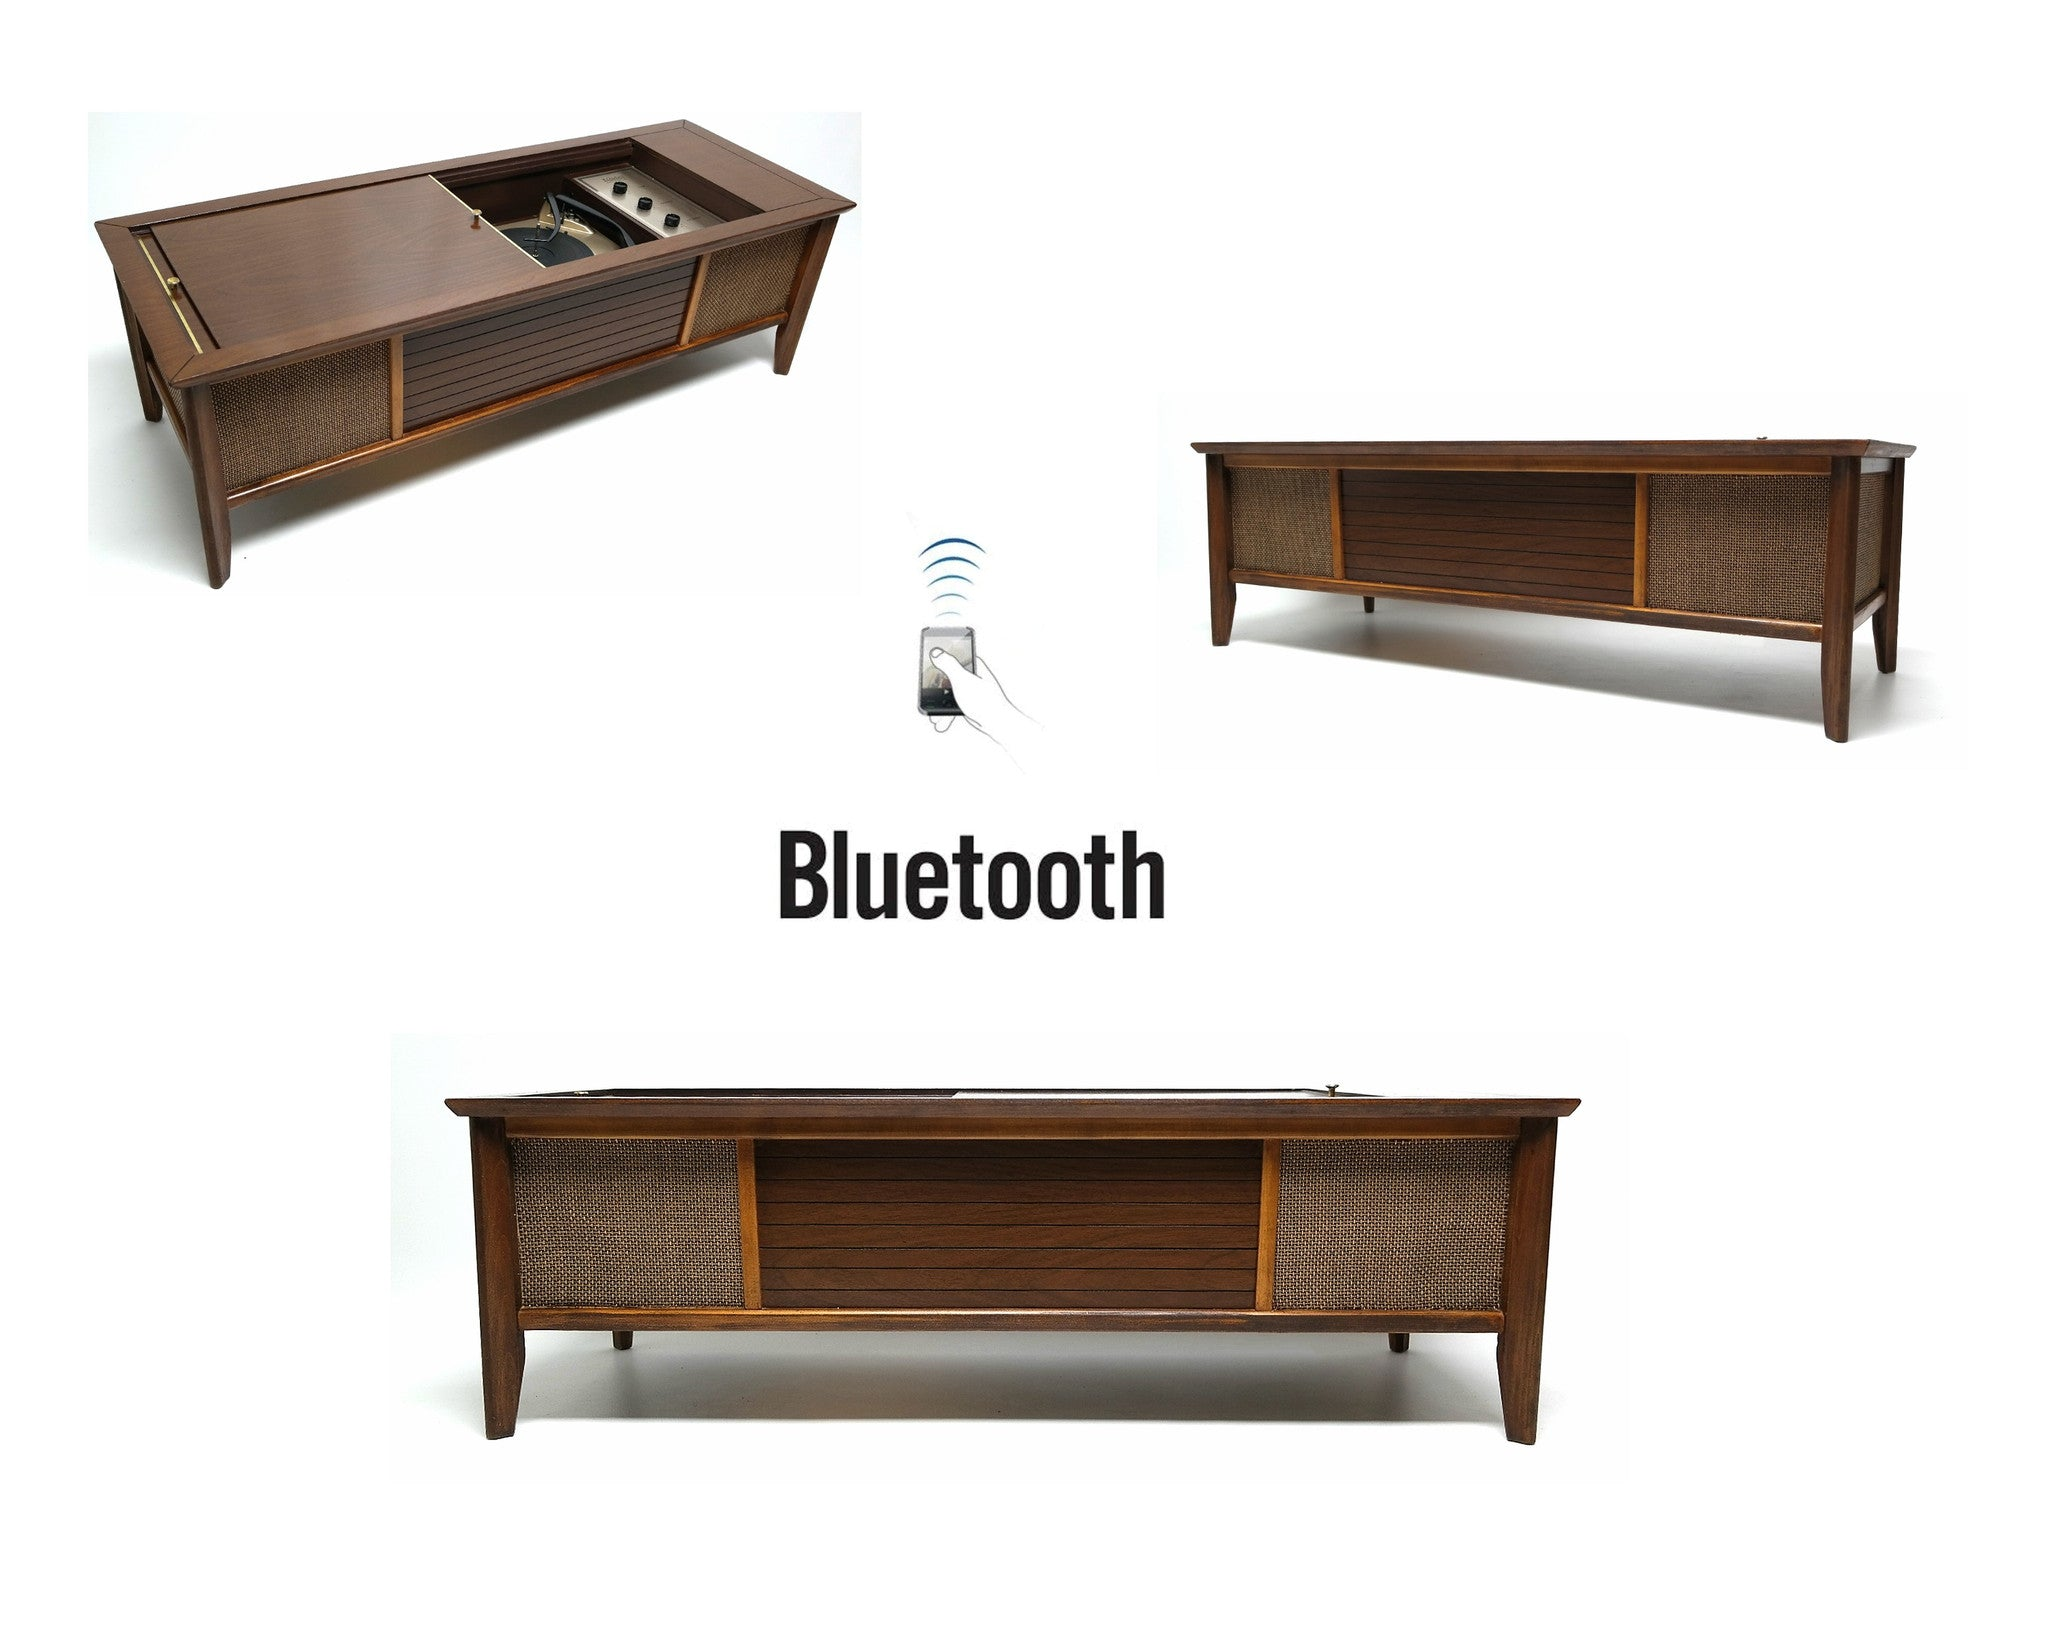 mid century modern stereo console by motorola the vintedge co